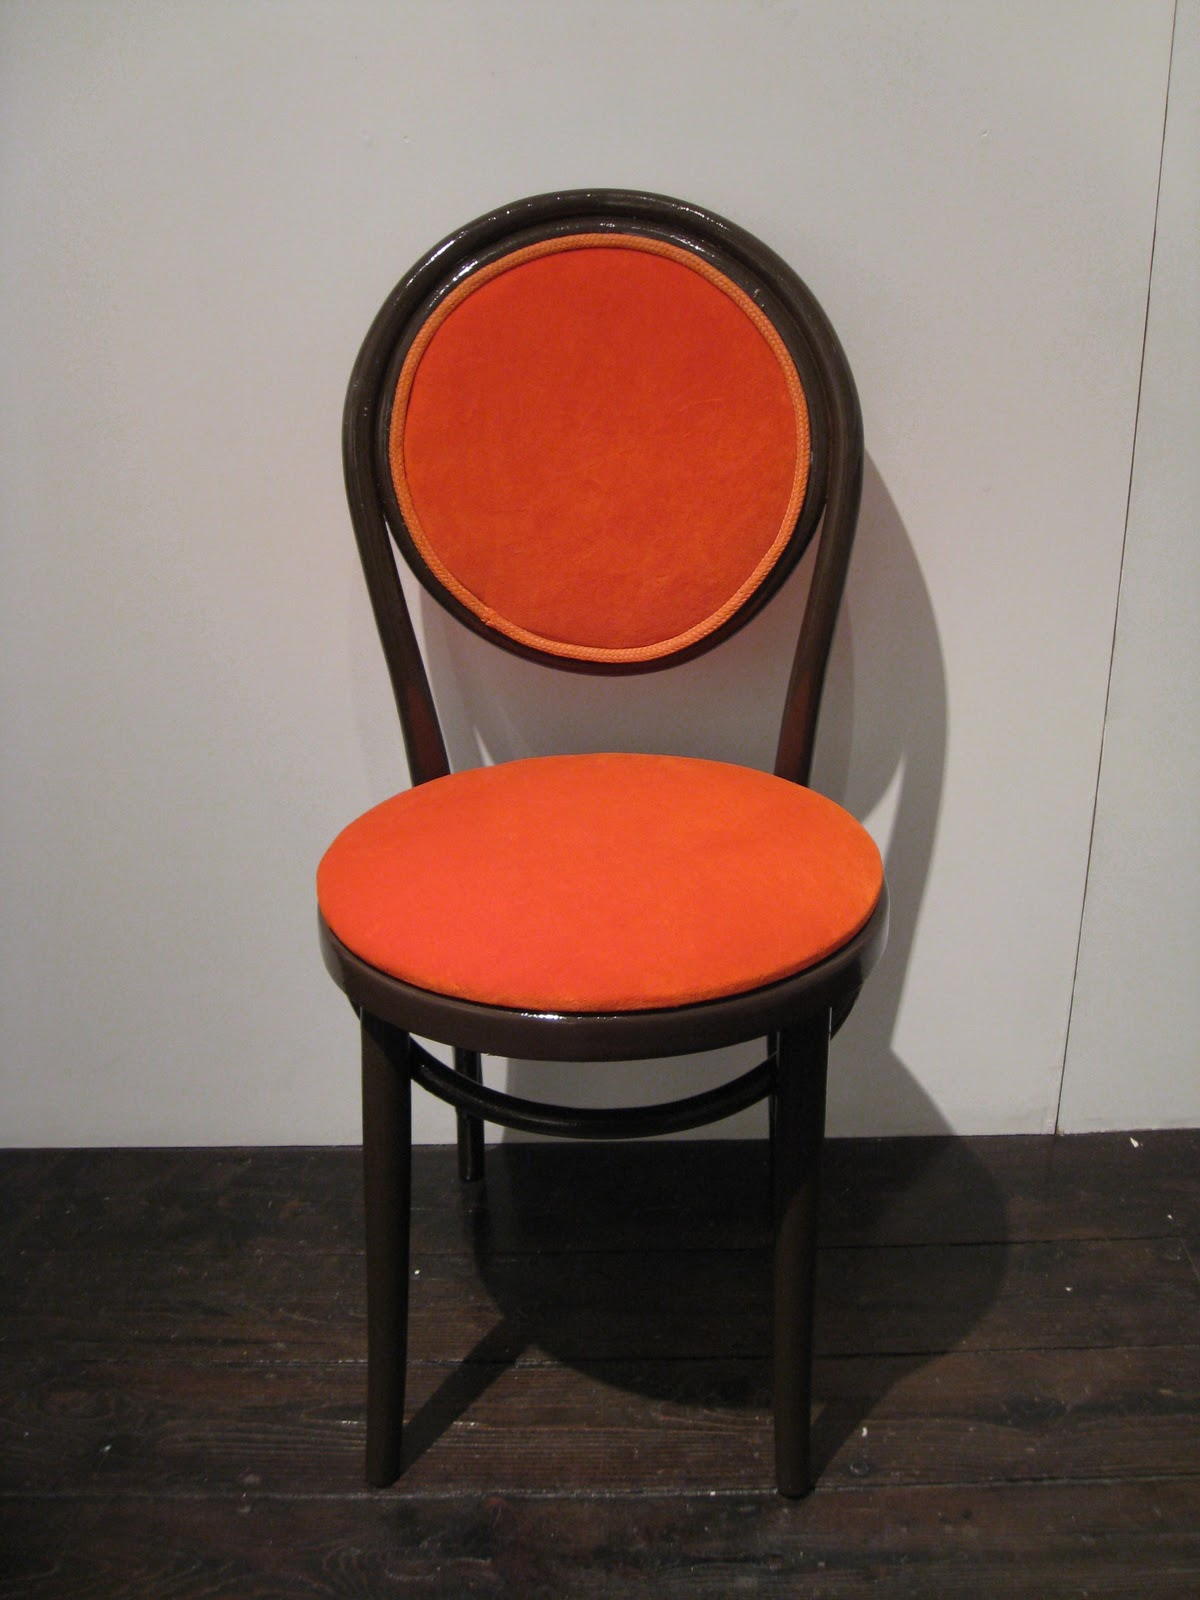 1970 S Thonet Dining Chair In Orange Velvet And Chocolate Brown Lacquer I Used Some Nylon Rope From Pembrey Beach For The Braid The Colour Reminded Me Of